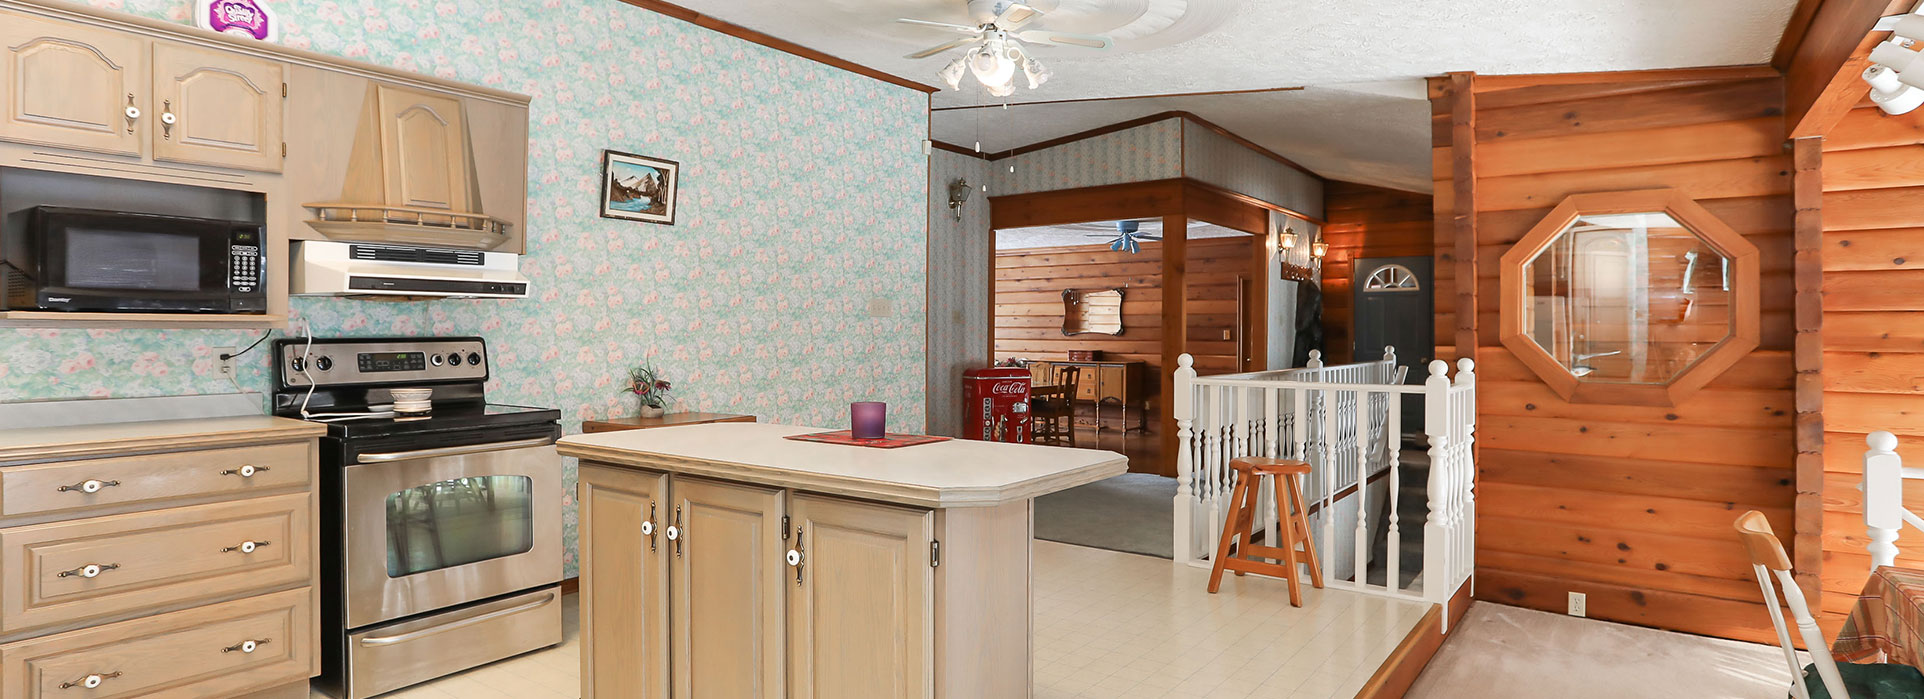 5870 Concession 2 - Kitchen - Cripps Realty